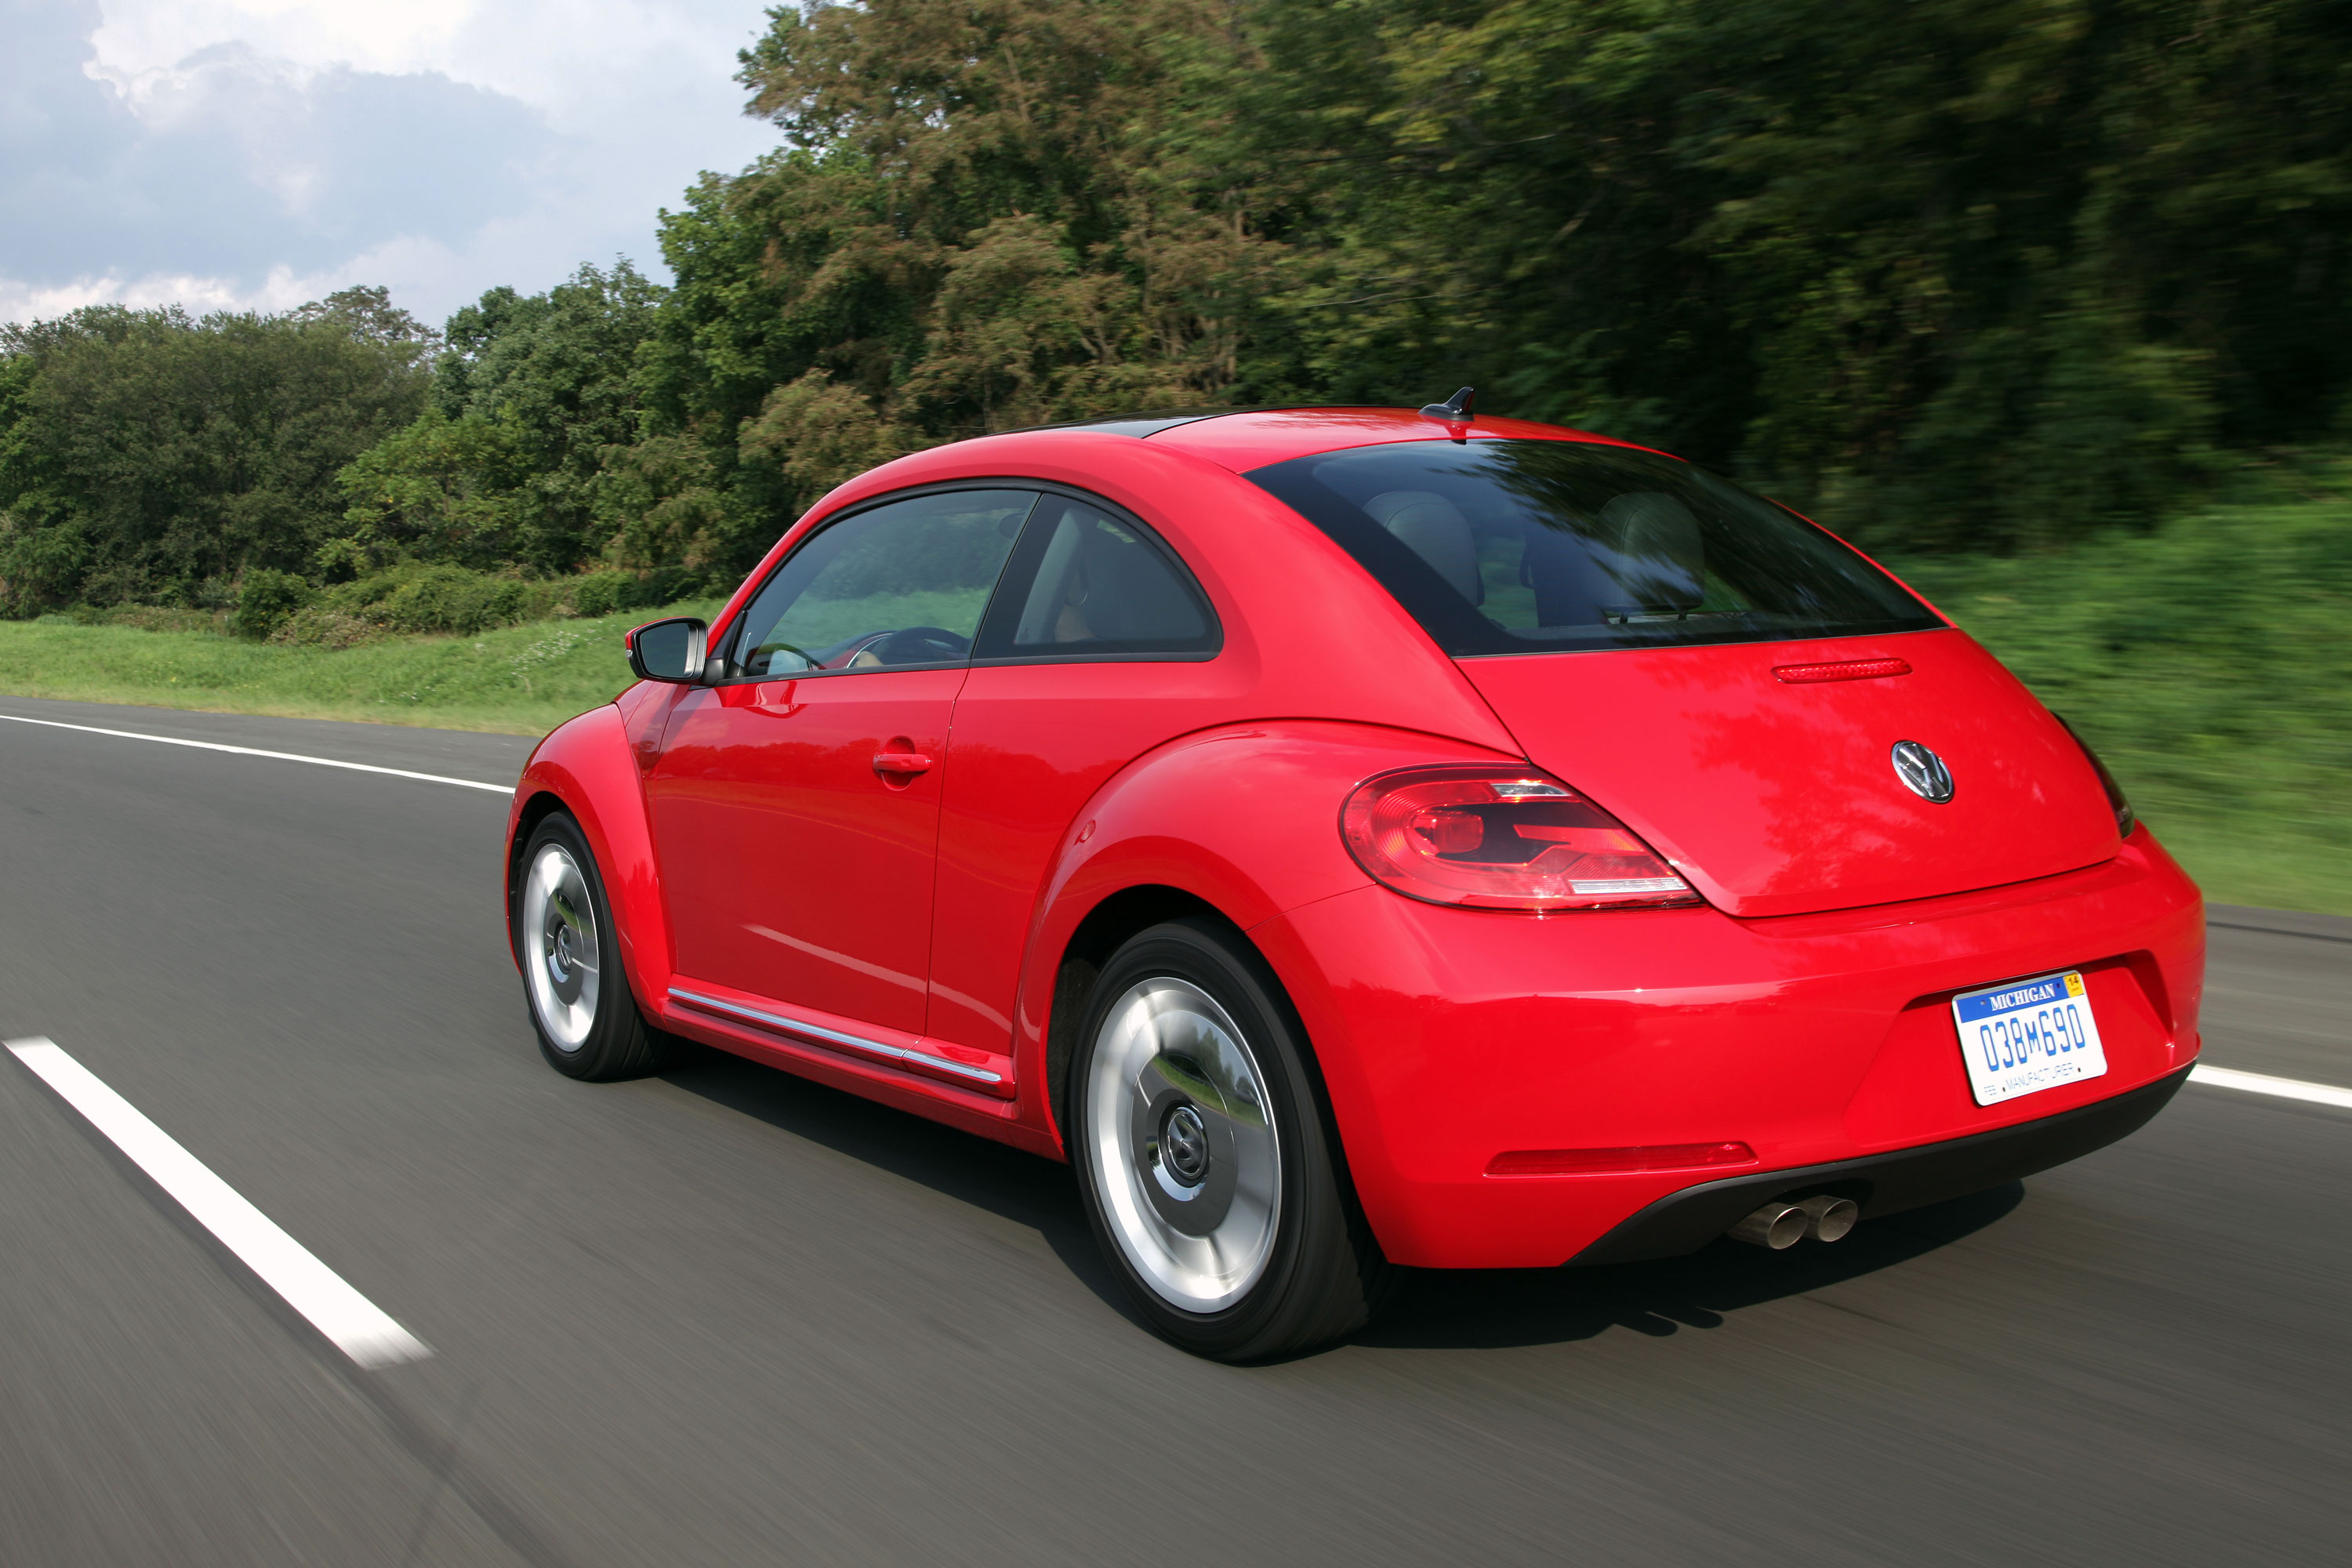 2012 Volkswagen Beetle rear 3/4